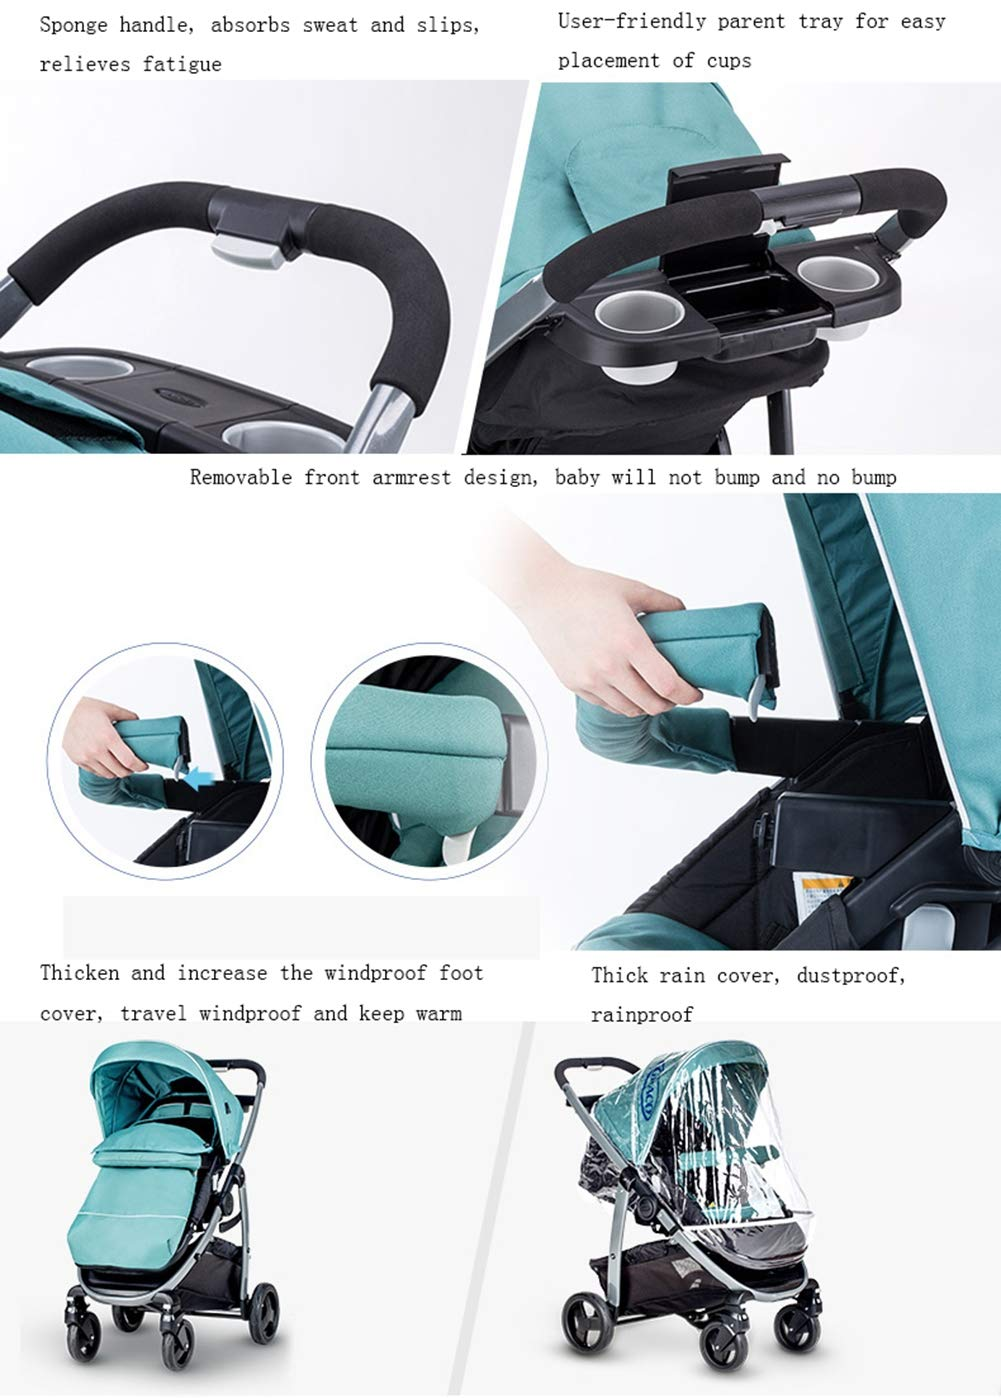 XUE Baby Stroller, Spacious High Landscape Trolley Shock Absorber Can Sit Reclining With Basket Travel System With Embrace XUE ∵ Wipeable and washable design for easier cleaning. ∵ Convertible high chair becomes booster and toddler seat. ∵ Keeps little ones secure with 3-point and 5-point harnesses. 5